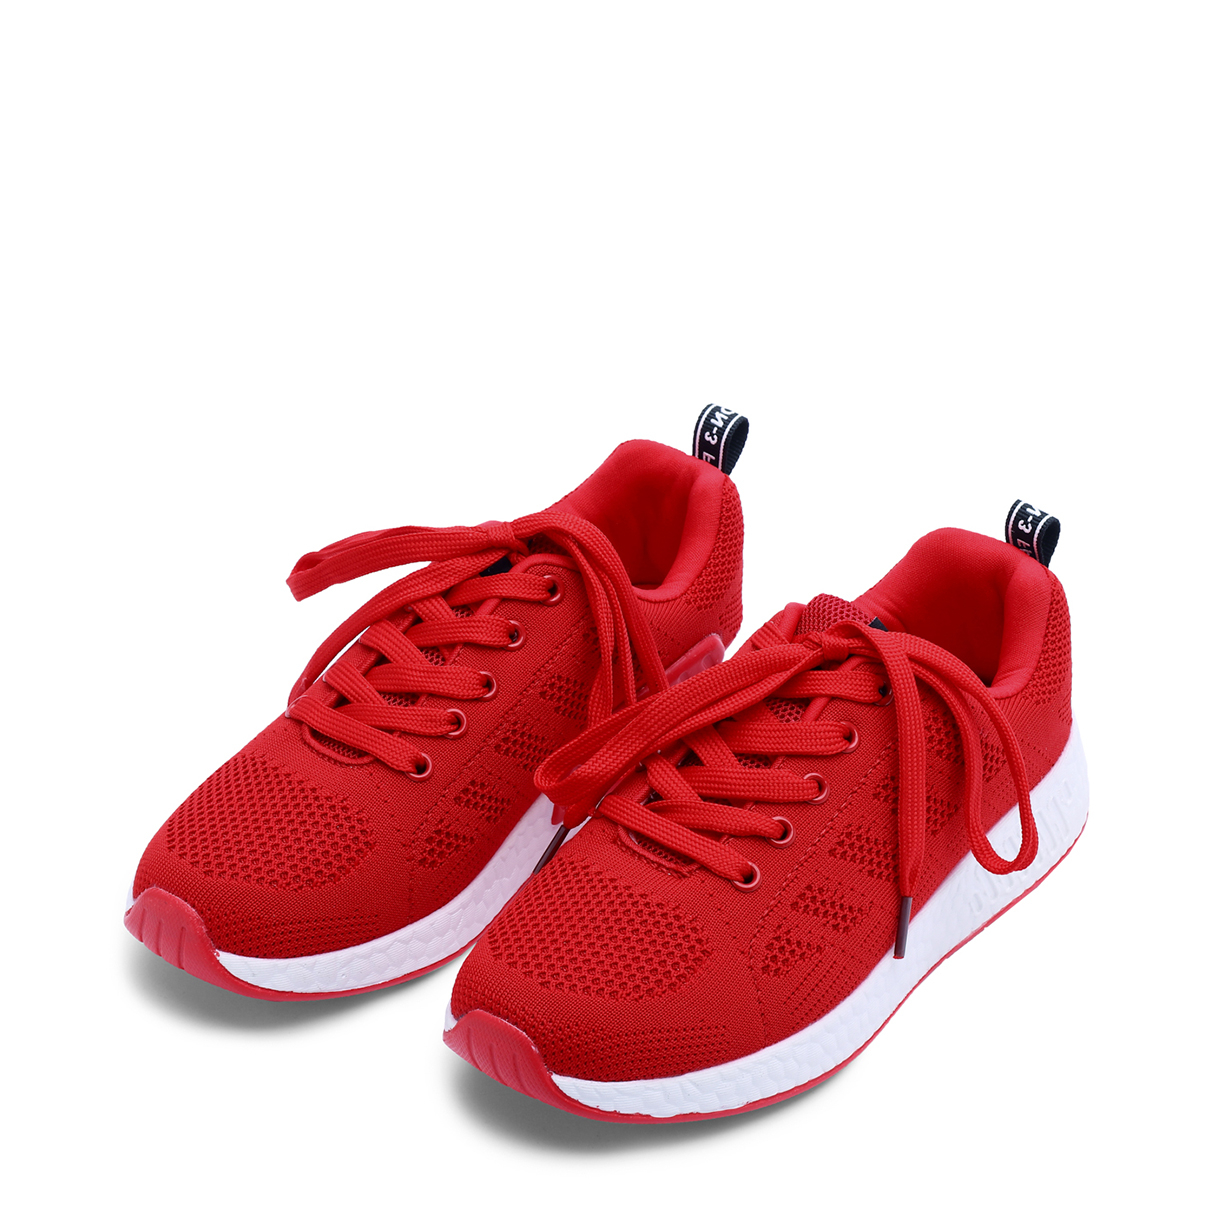 Red Casual Mesh Round Toe Lace-up Sneakers